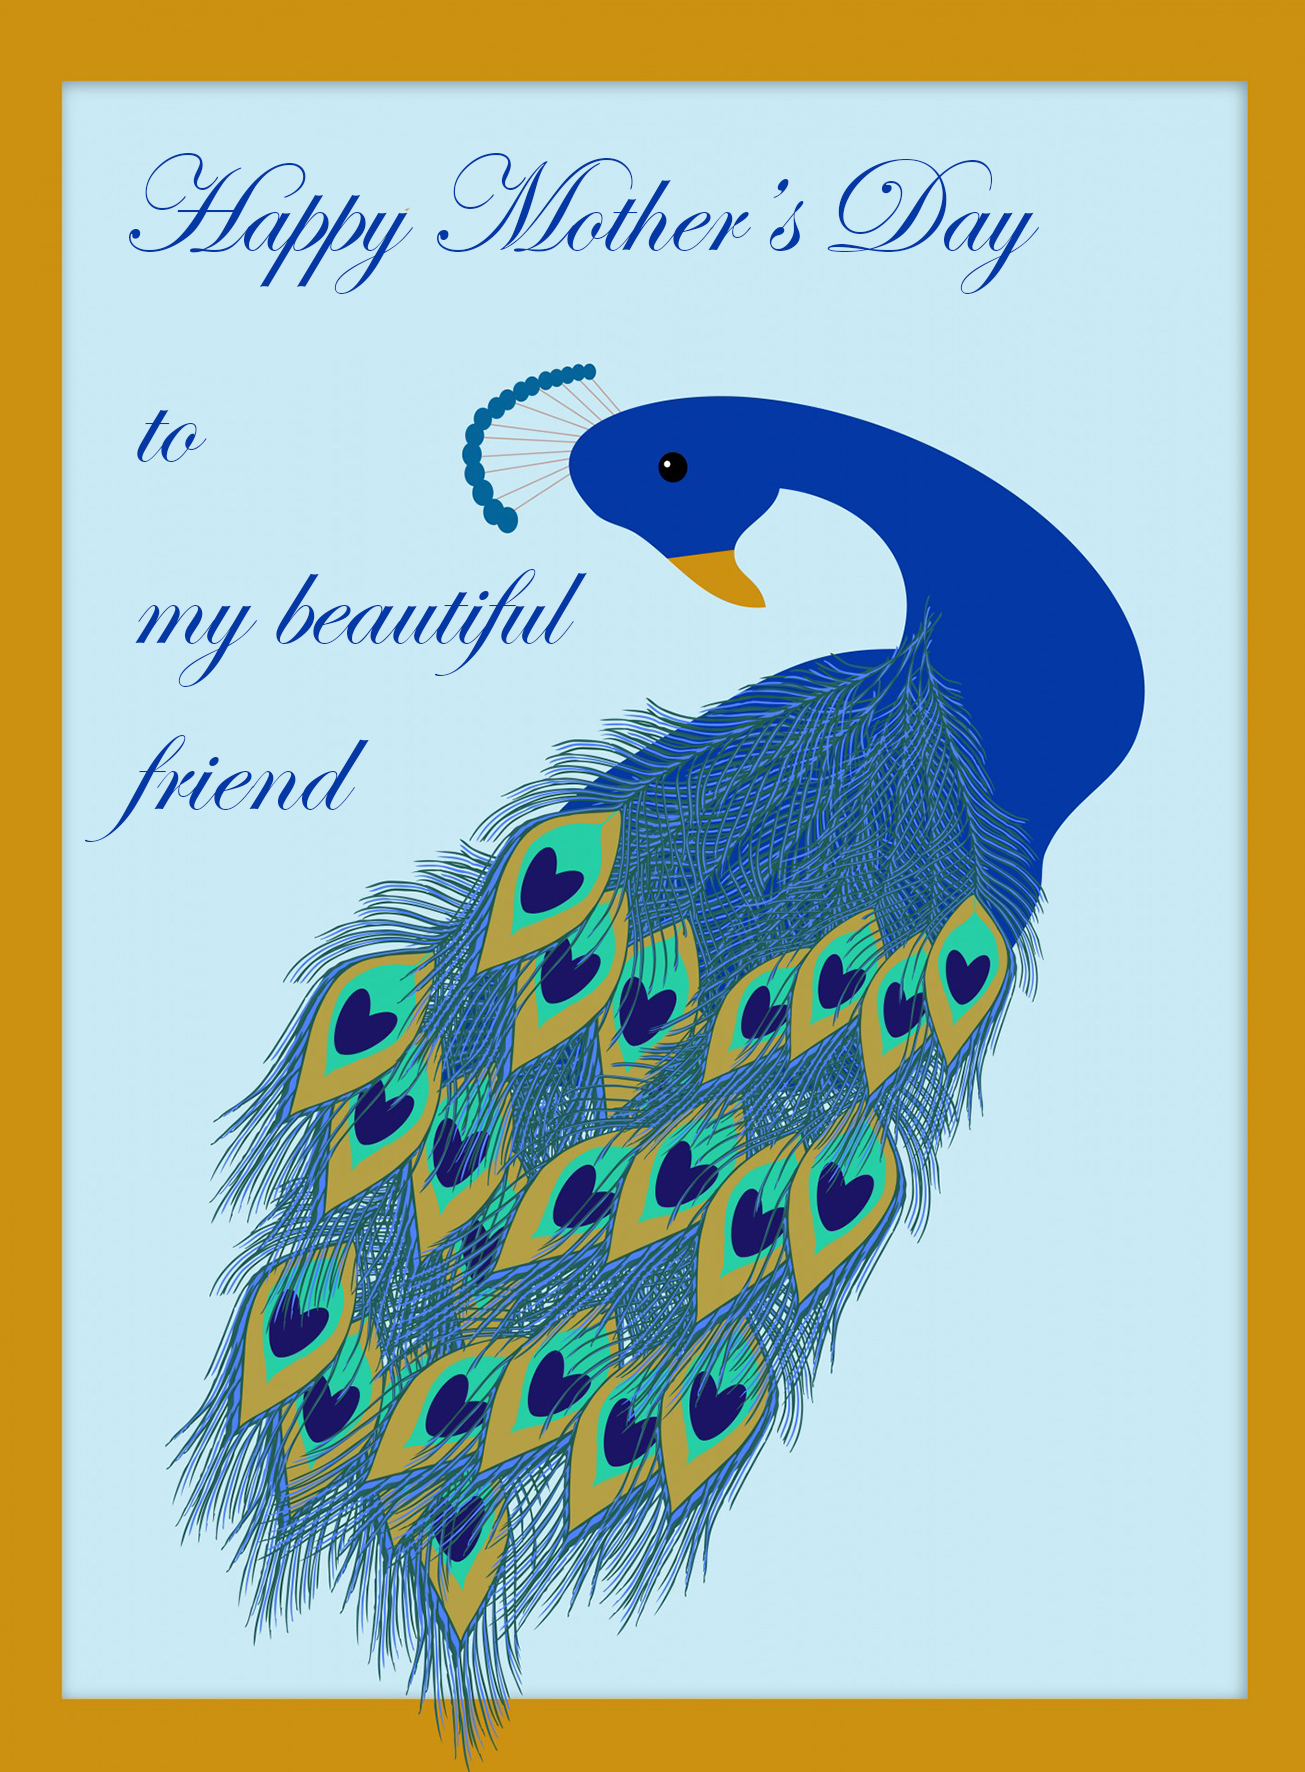 Mother's day card for friend with peacock